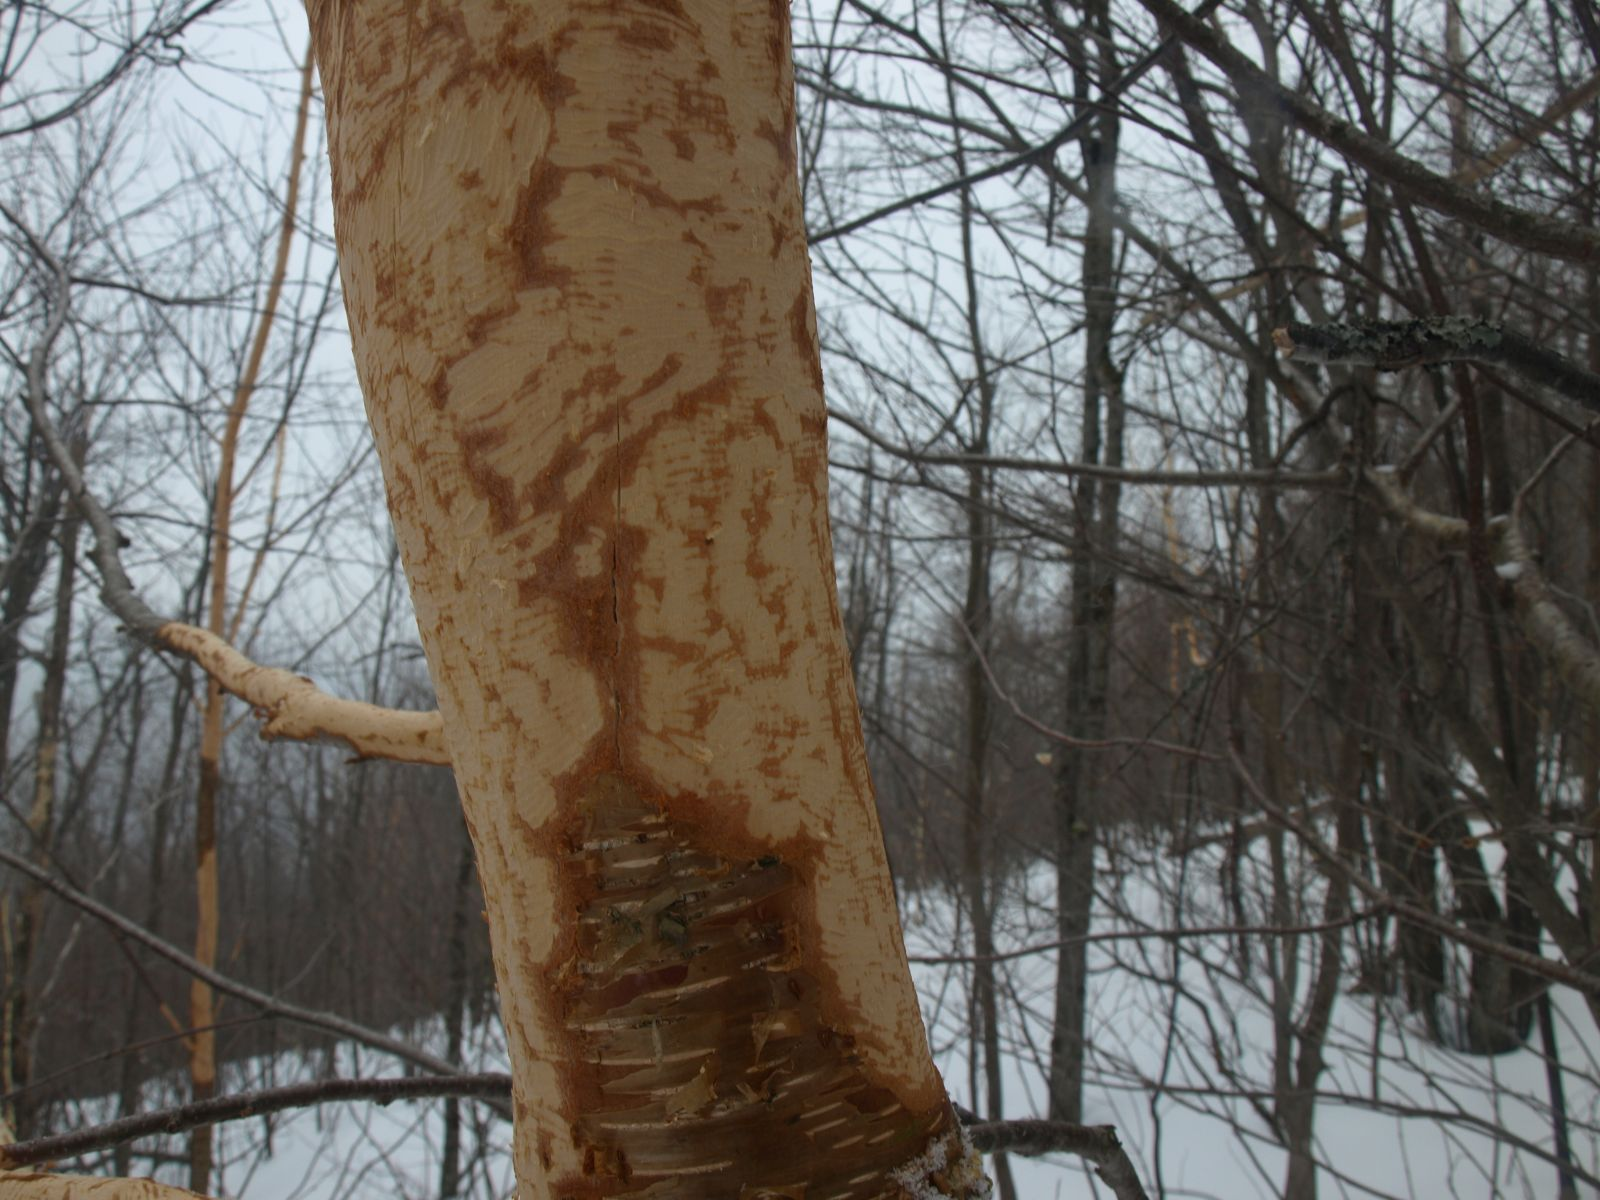 Foraged by porcupines, these trees must feel a bit under dressed